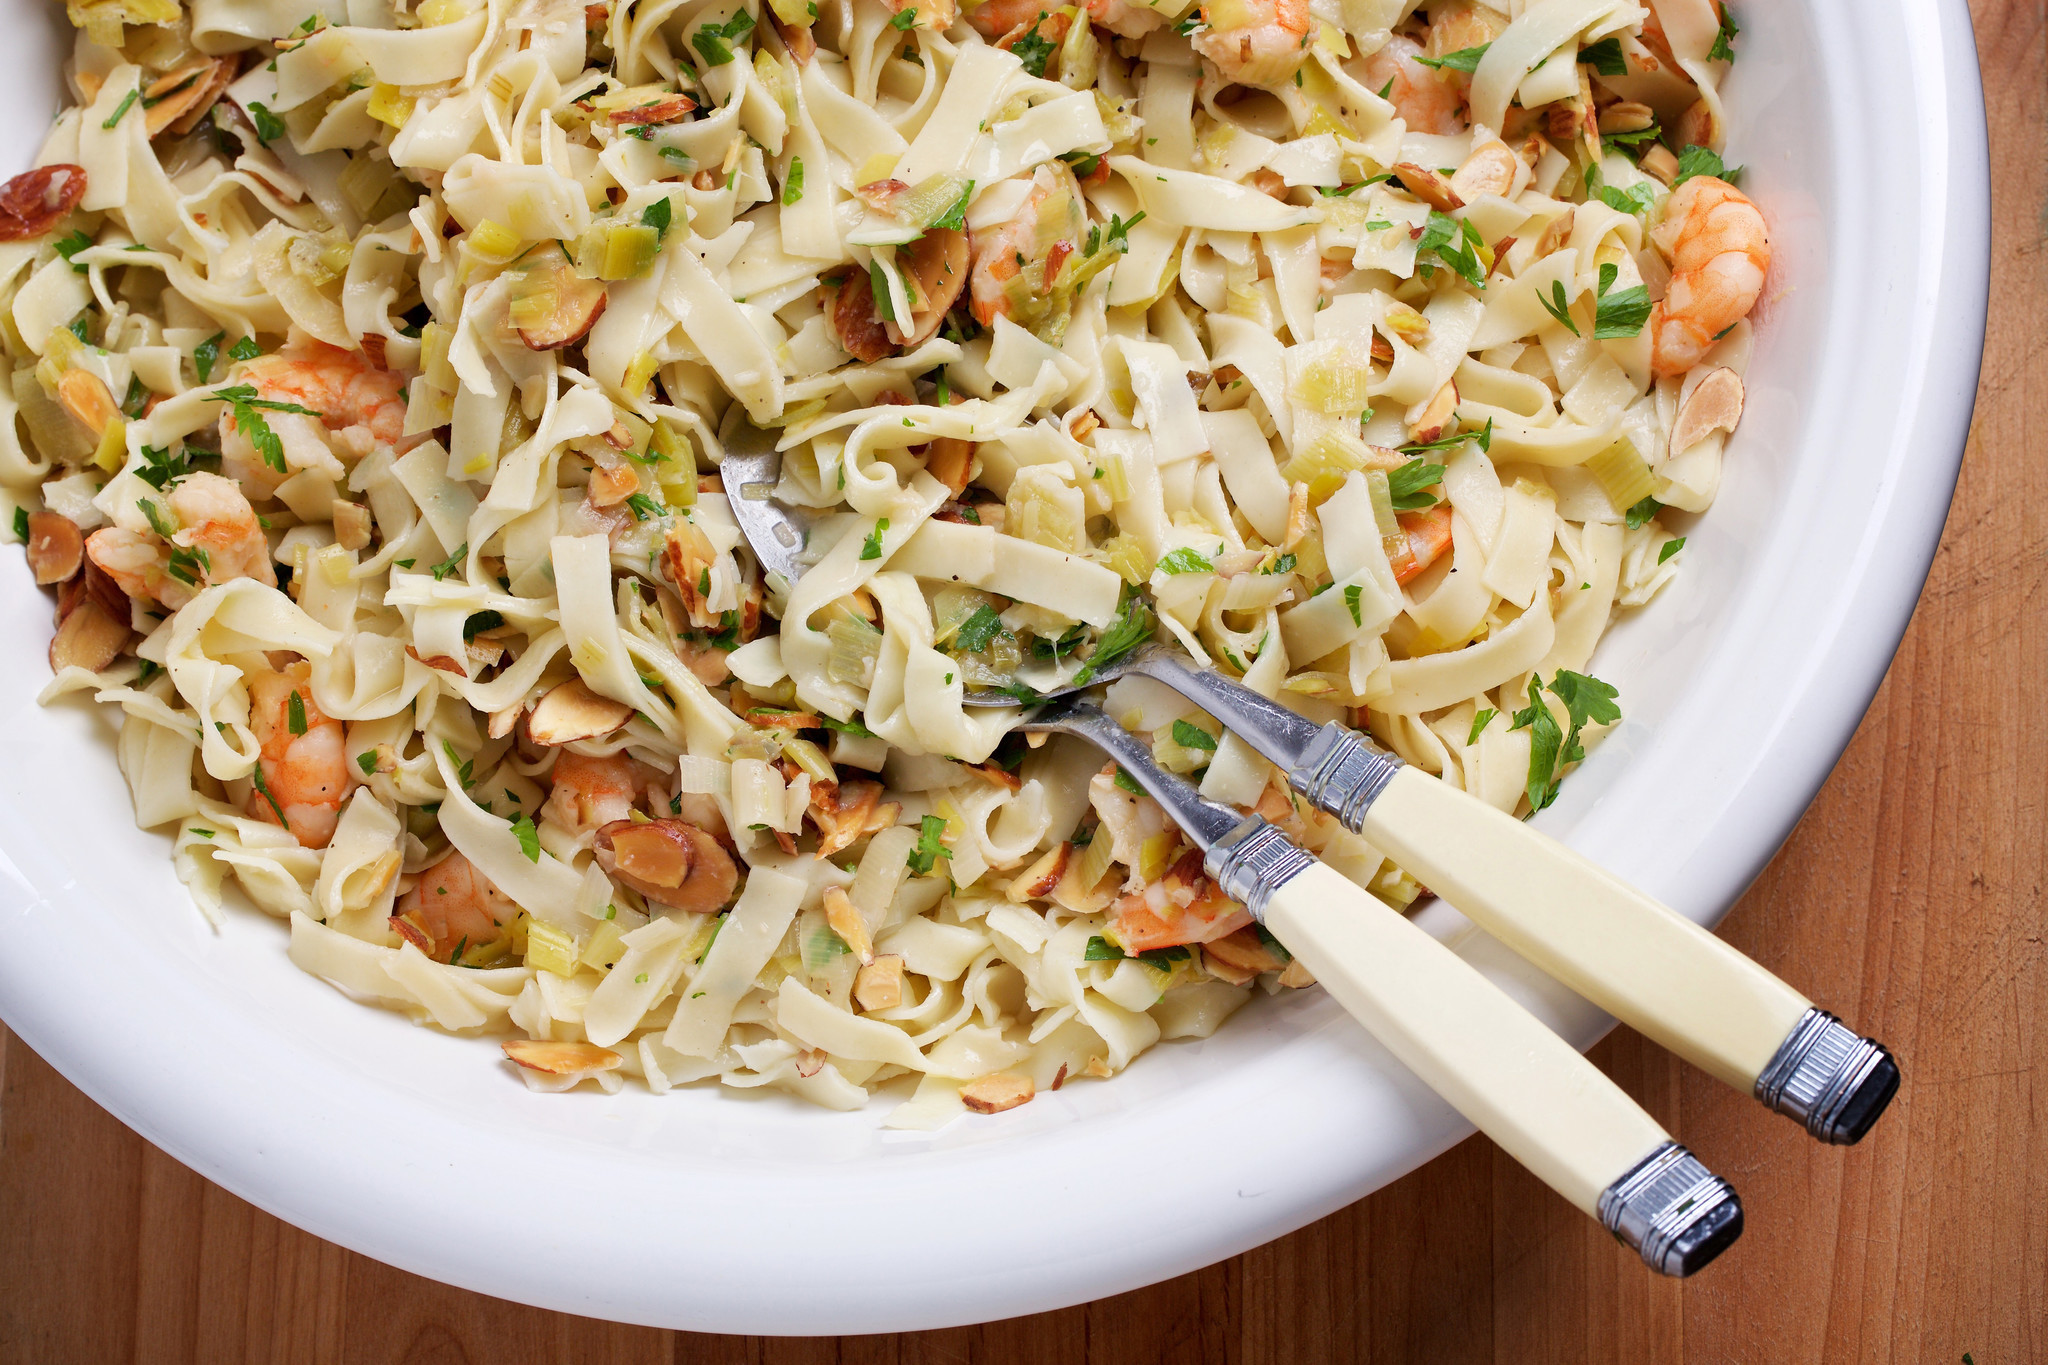 This pasta dish, starring summer leeks and shrimp, tastes good at any temperature